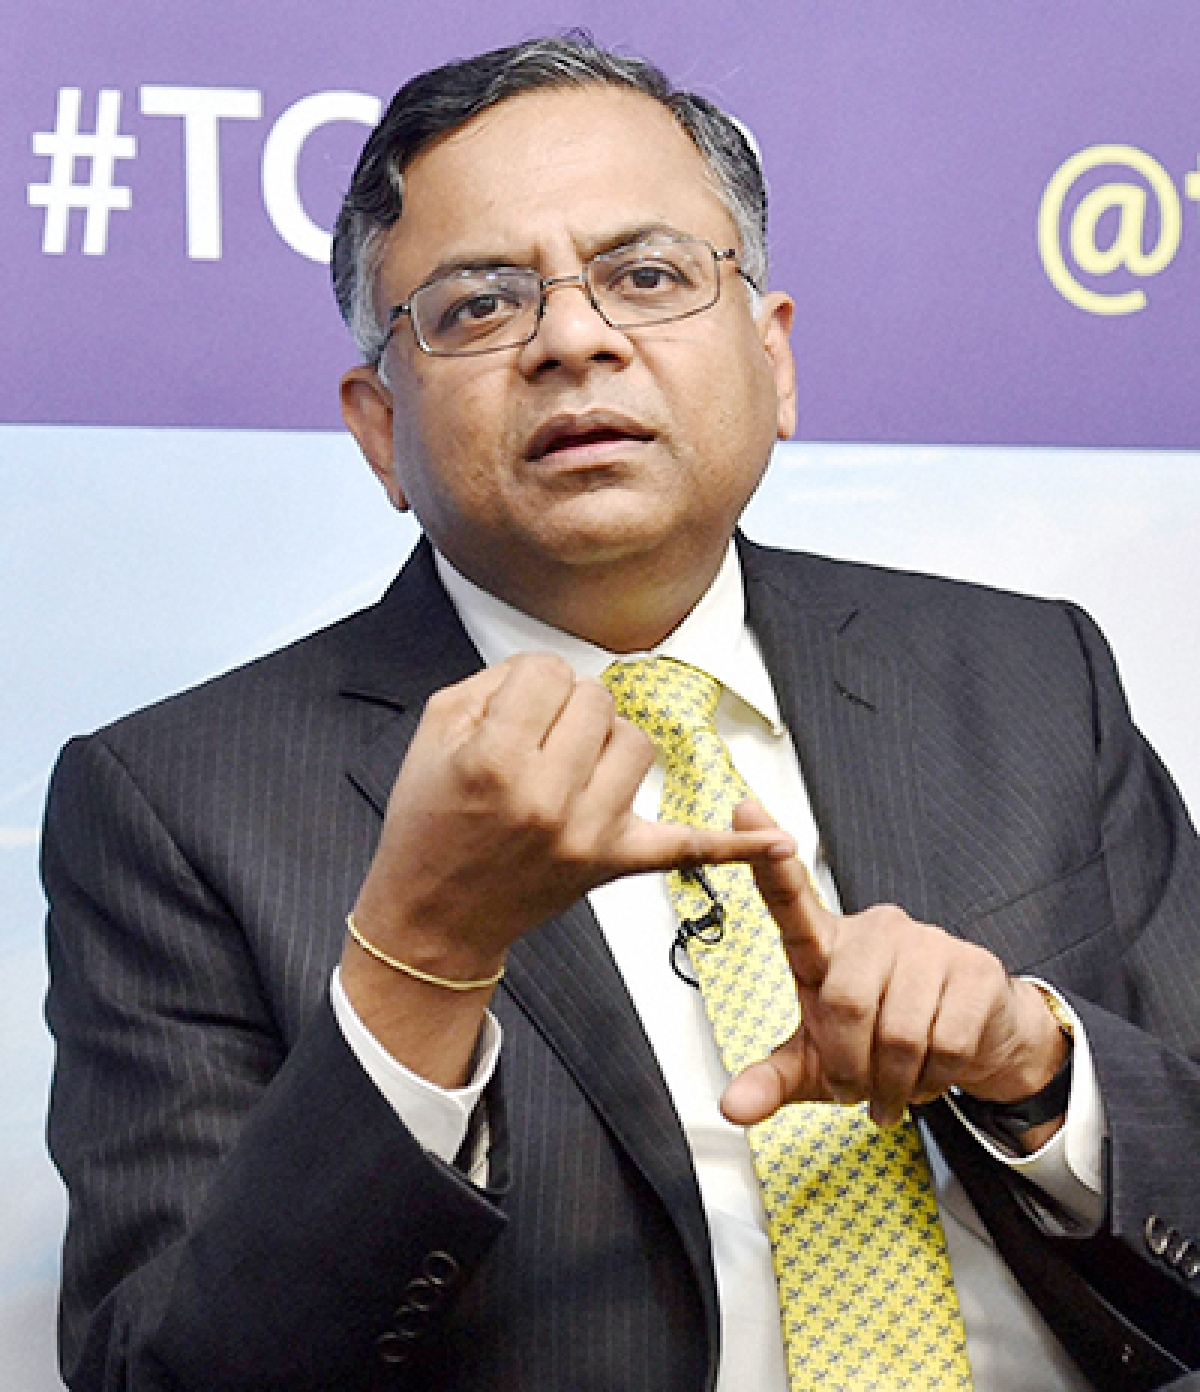 TCS sees digital tech driving growth; to train 1L employees